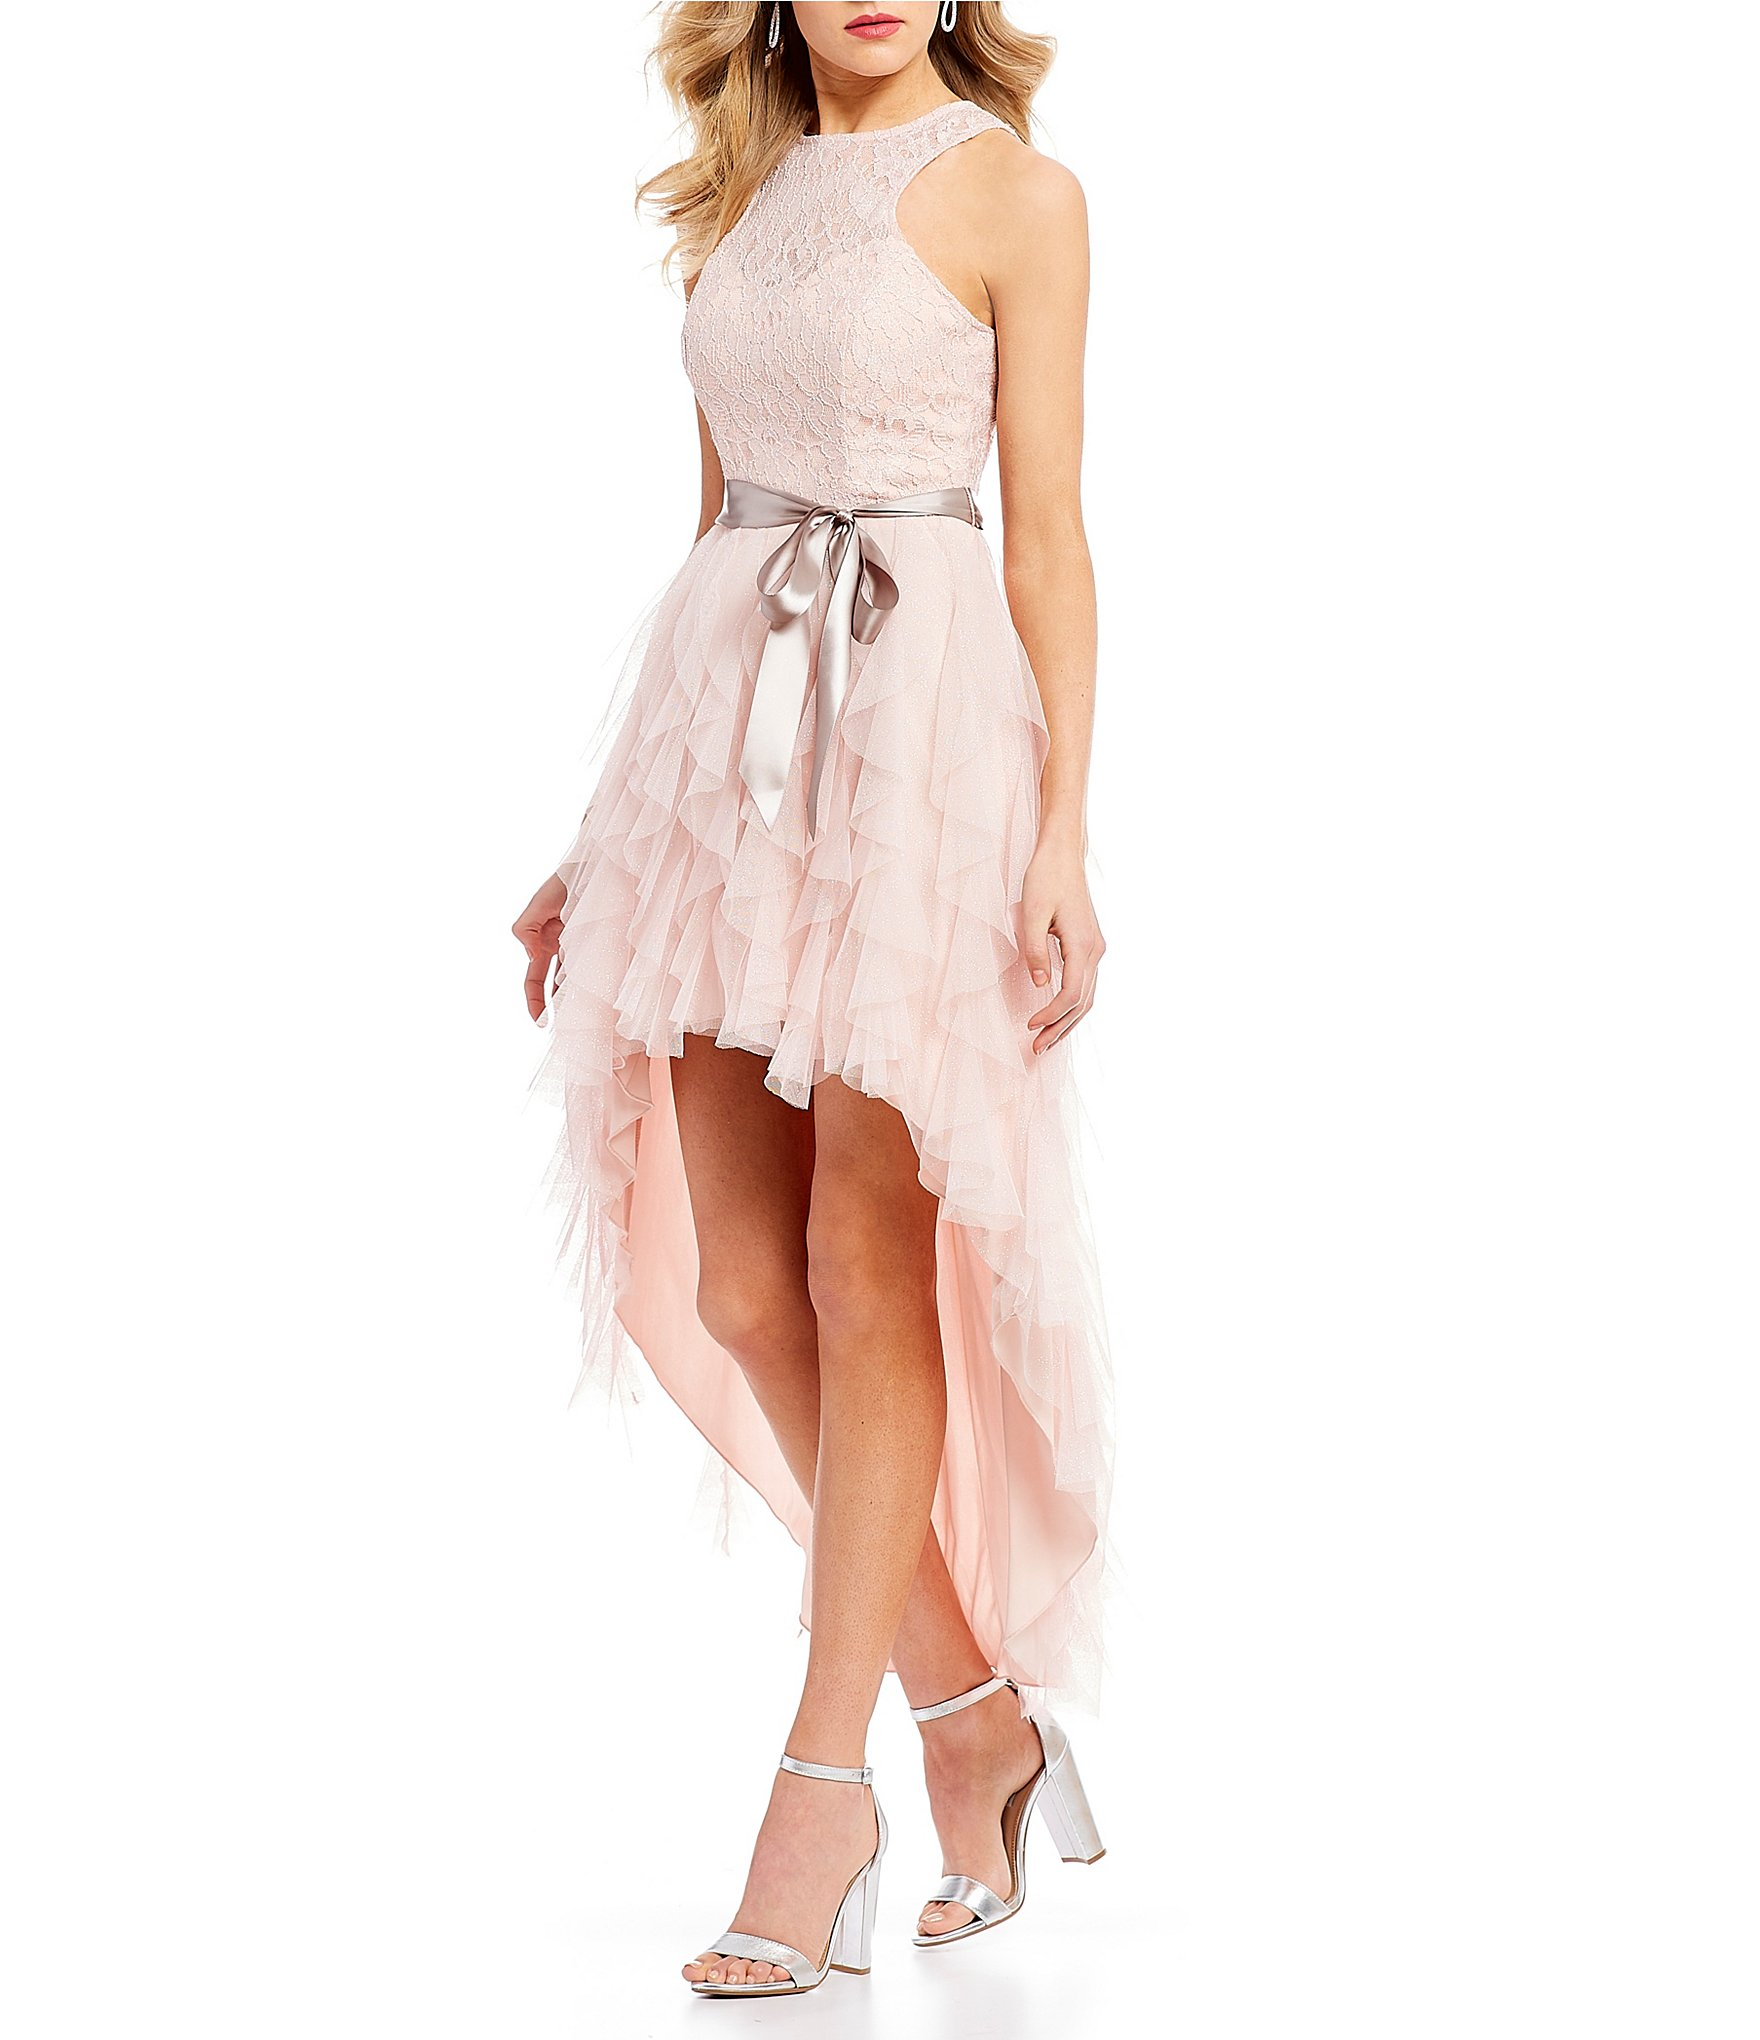 Dressy High Low Dresses for Women